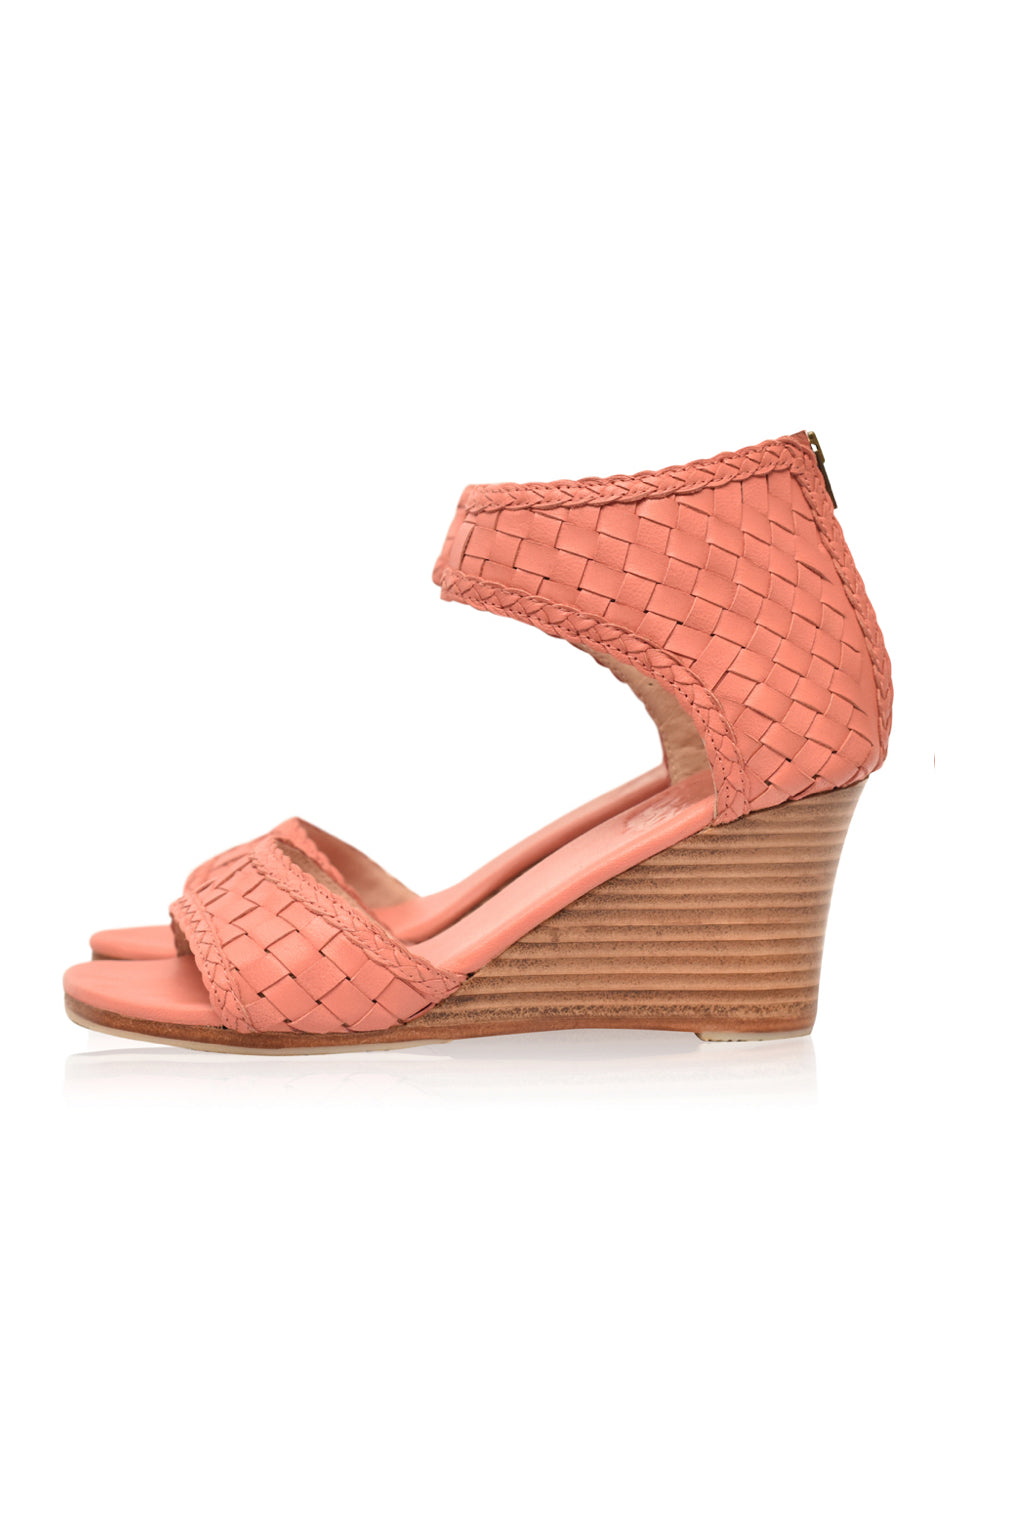 Athena Leather Wedges